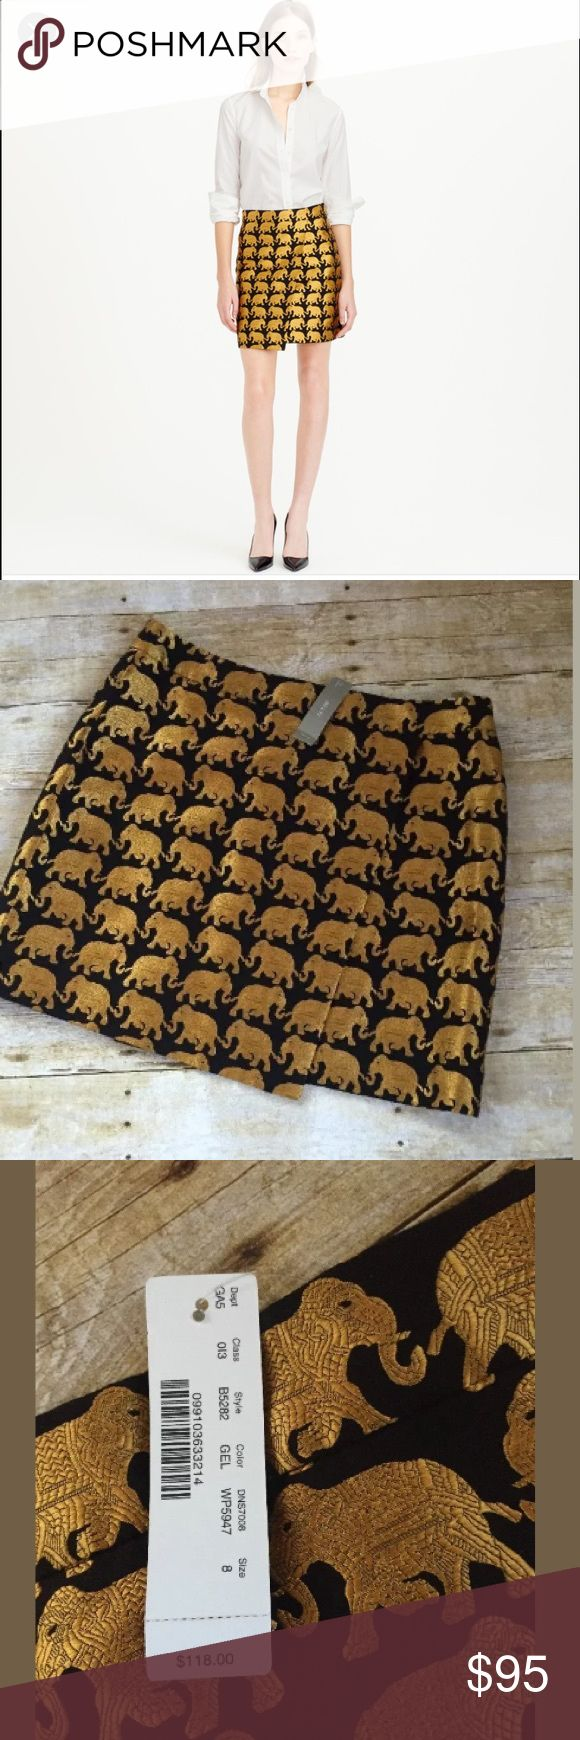 J Crew Elephant Parade Origami Skirt New with tags J. Crew Elephant Parade Origami Skirt Black Gold Size 8 NWT. Minor pull in black fabric on front of skirt as noted in 6th photo. Item sold as is J. Crew Skirts